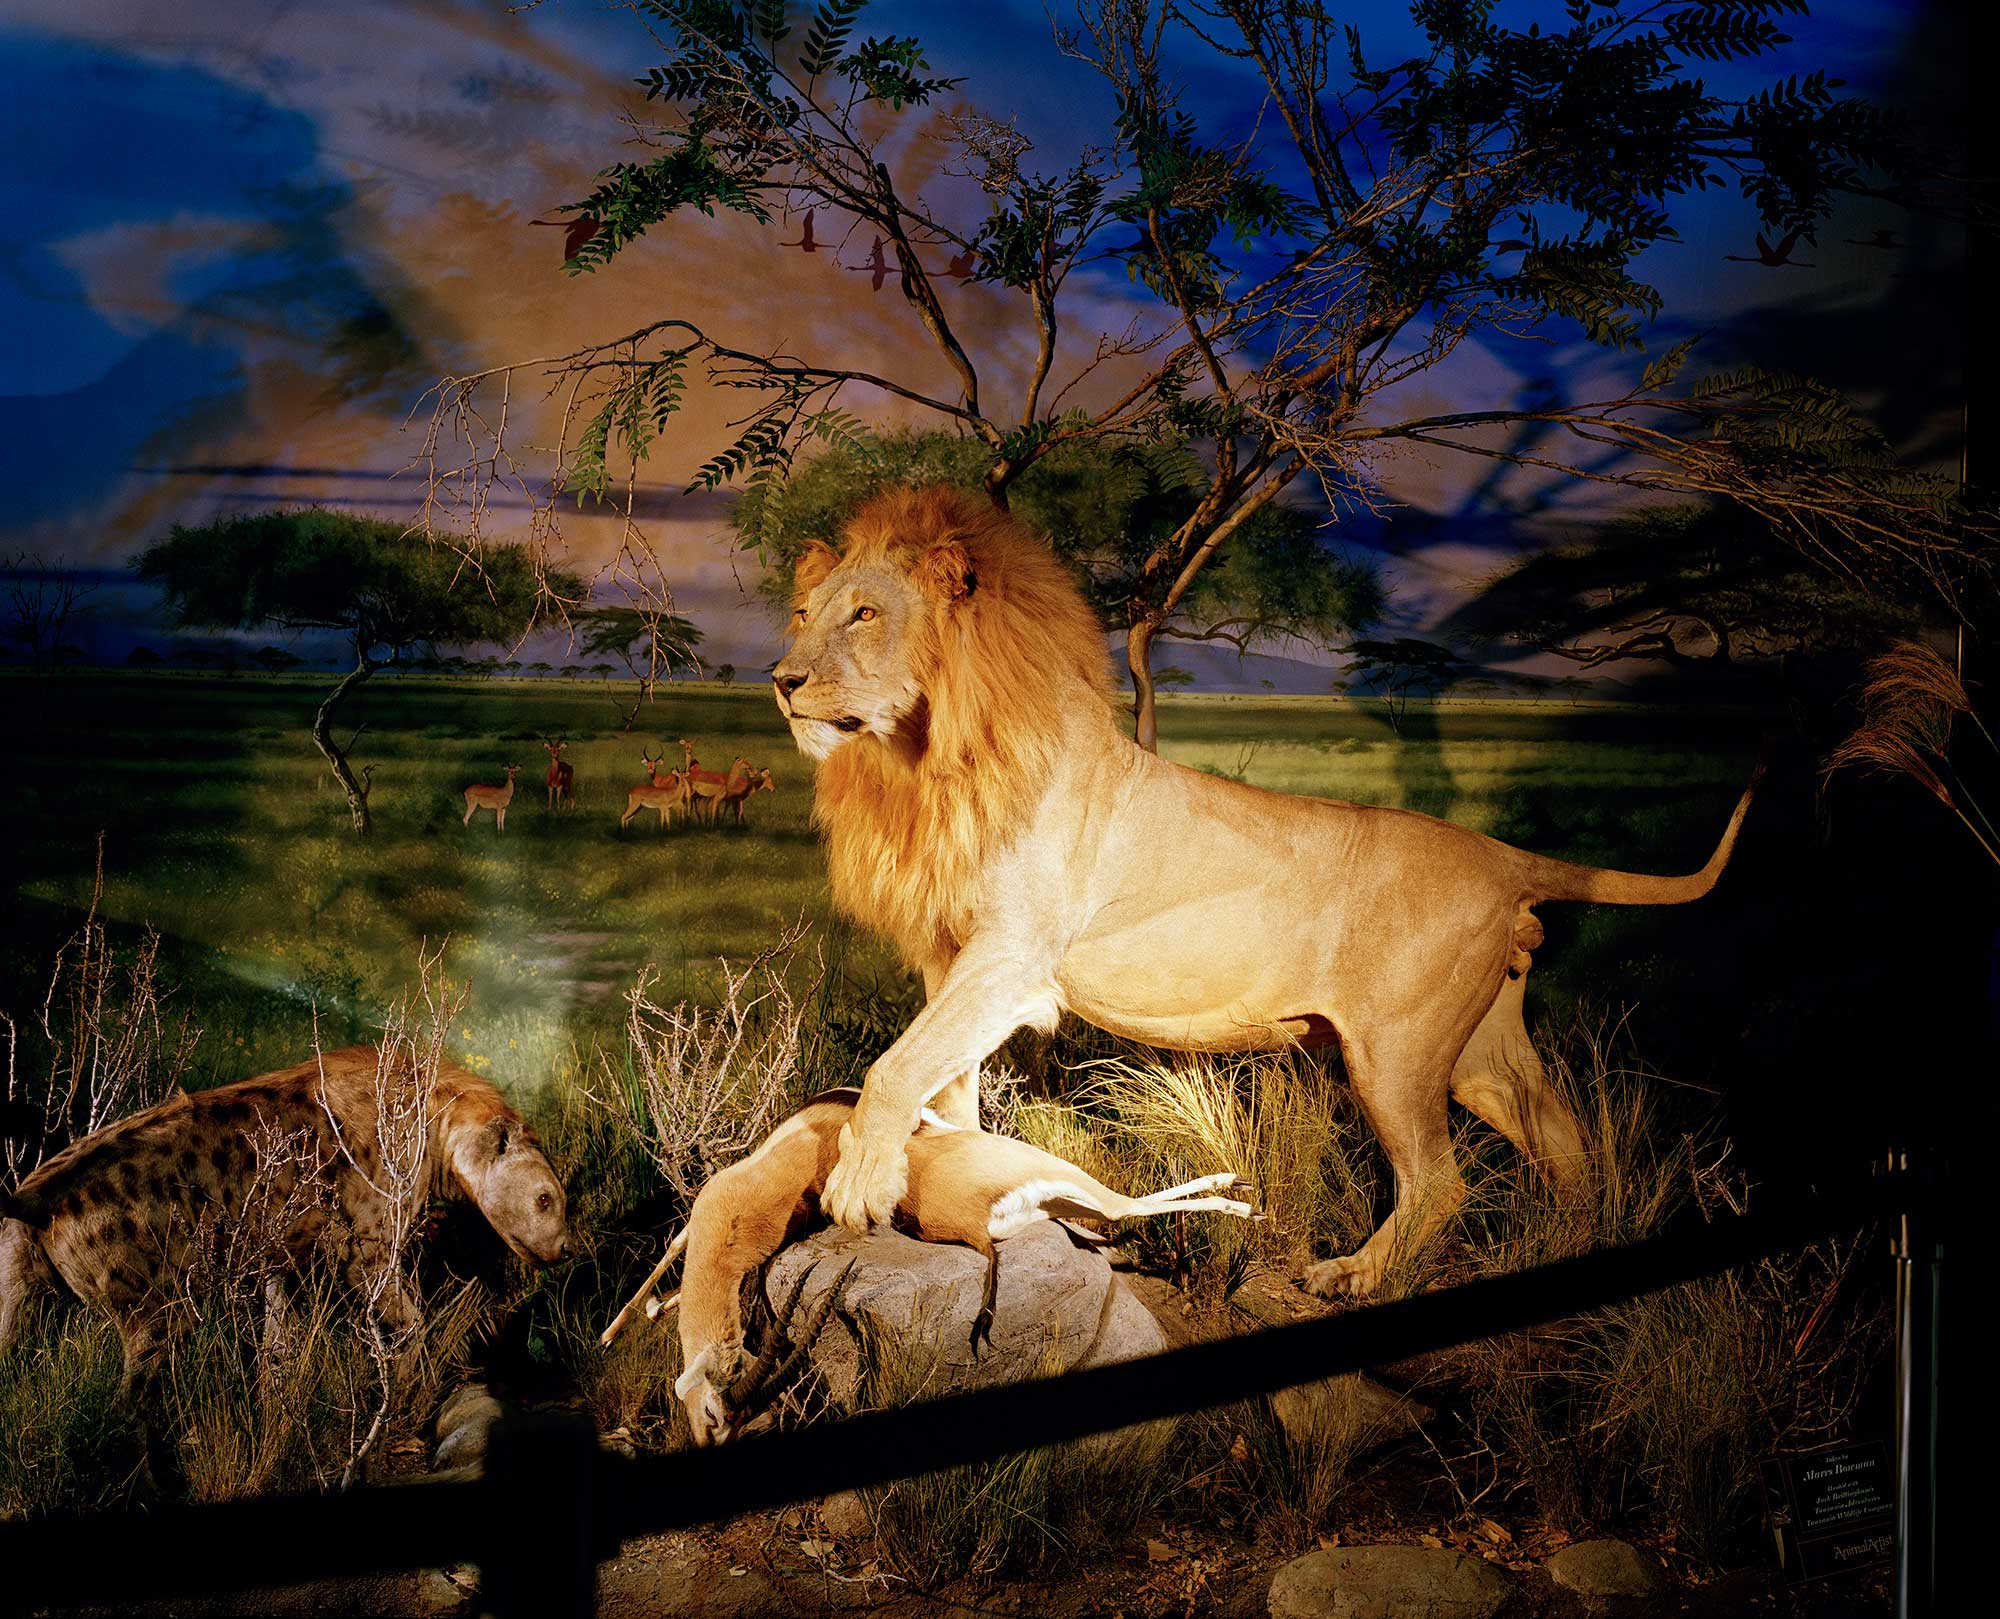 There are now more captive Lions in South Africa than wild ones; approximately 8,000 compared to 2,000 living in the wild.